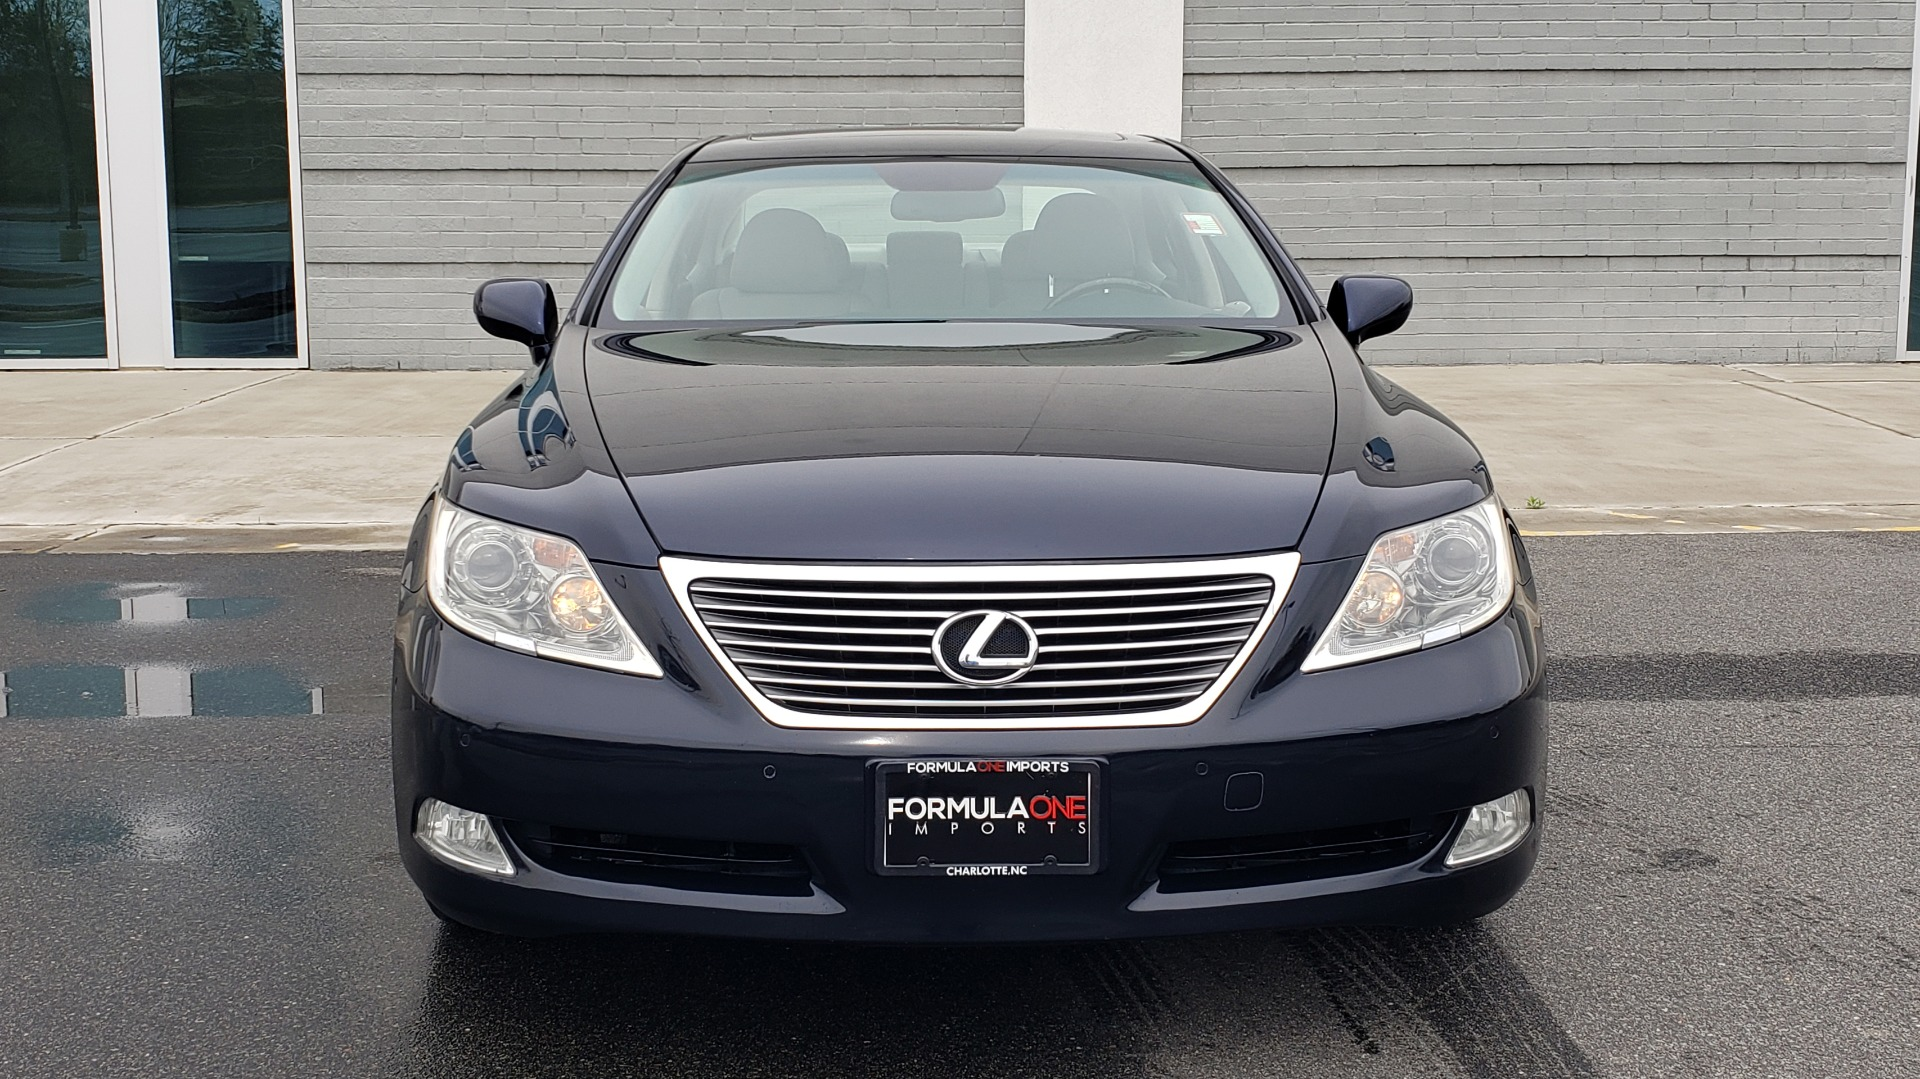 Used 2008 Lexus LS 460 LWB LUXURY SEDAN / MARK LEVINSON / INT PARK ASST / REARVIEW for sale Sold at Formula Imports in Charlotte NC 28227 16